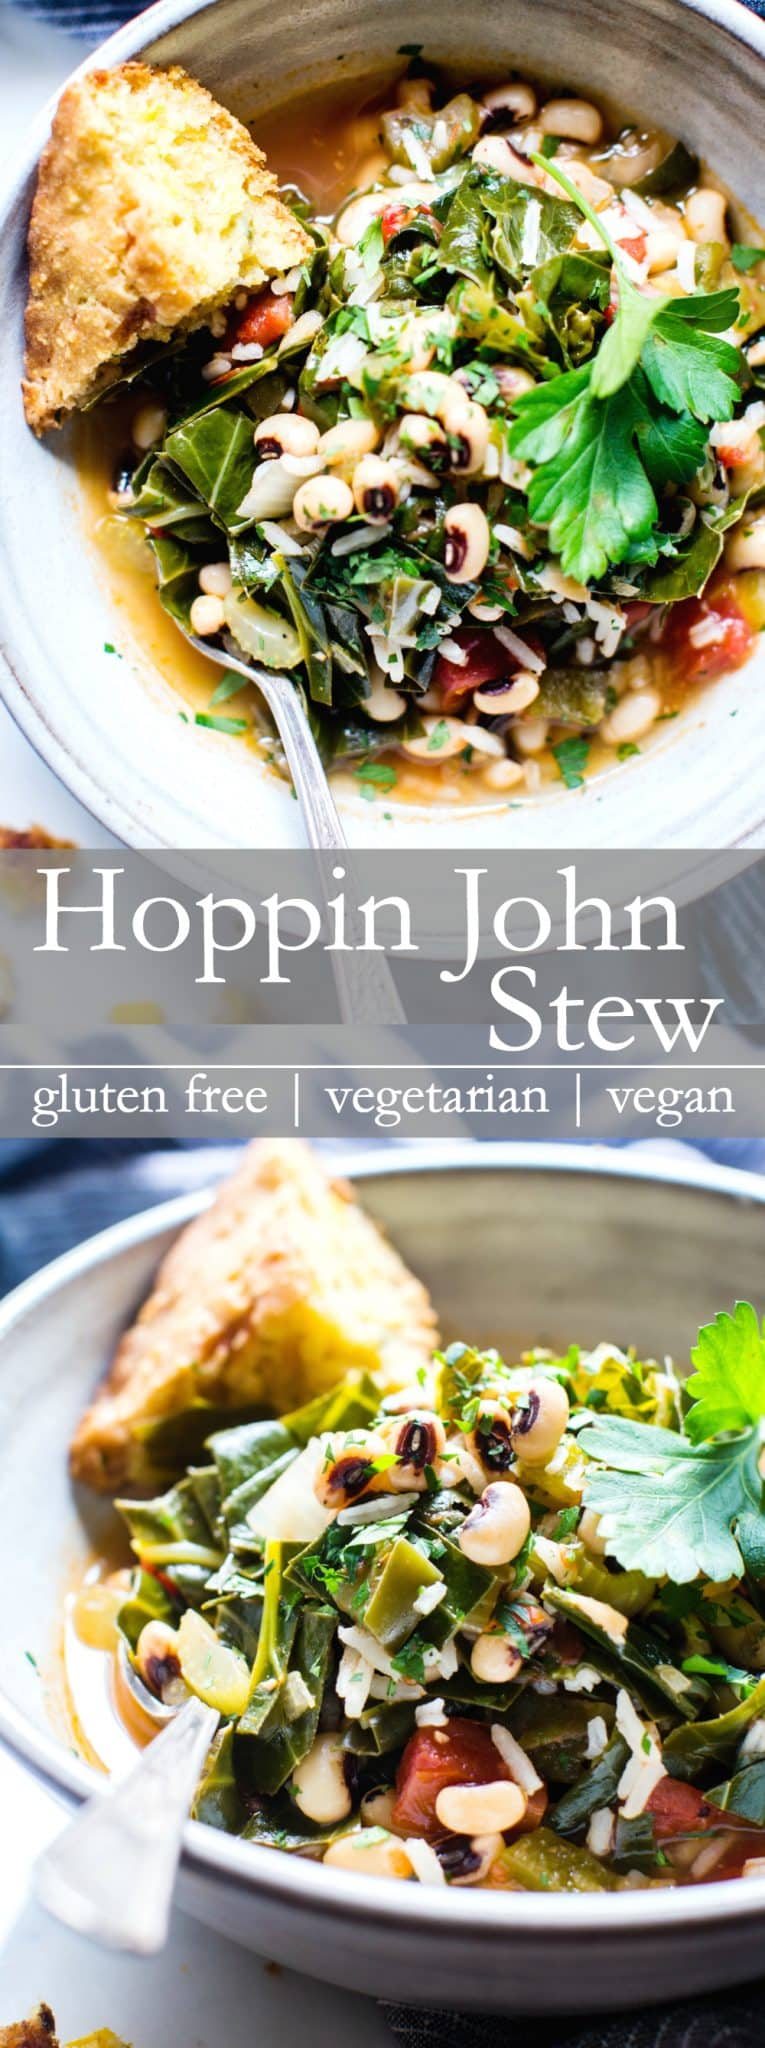 Traditionally made in celebration of the New Year, and to bring good luck, Hoppin John Stew is a favorite during the coldest months of the year. Hearty and comforting, serve with a side of cornbread to complete this filling meal! #glutenfree #veganfood #VeganDinner #VegetarianDinner #Blackeyedpeas